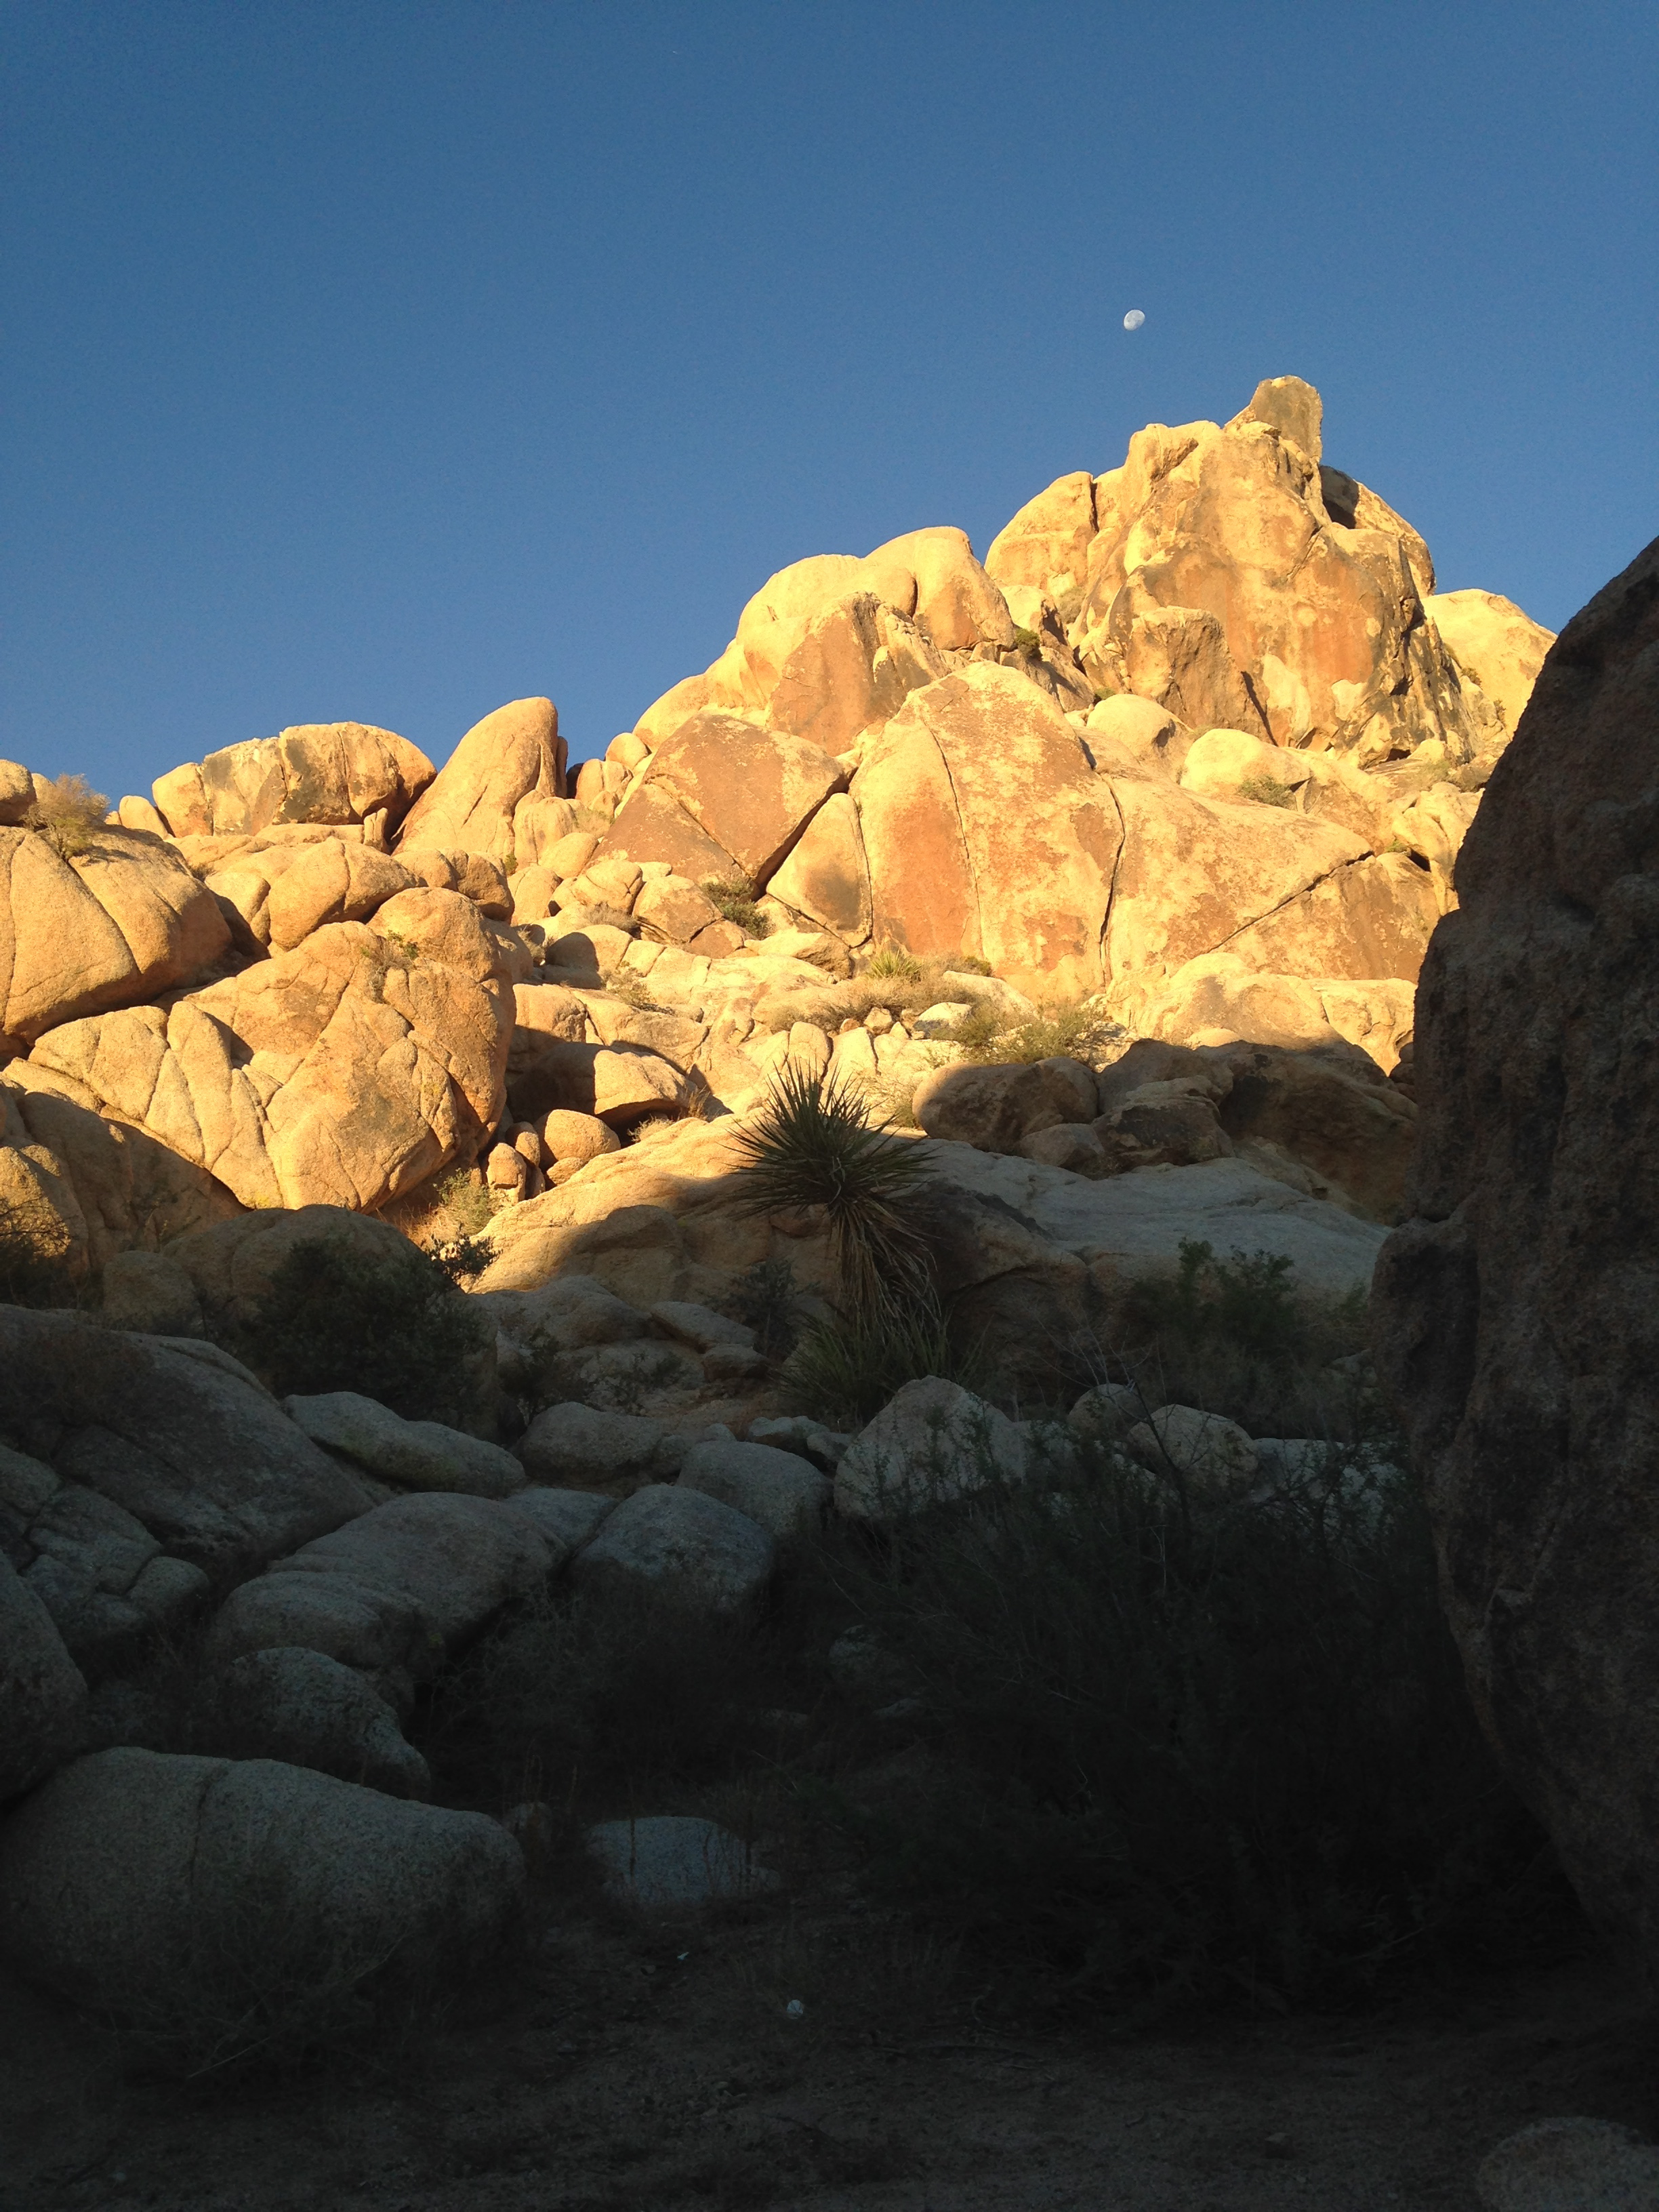 The view from my front door for a week in Joshua Tree